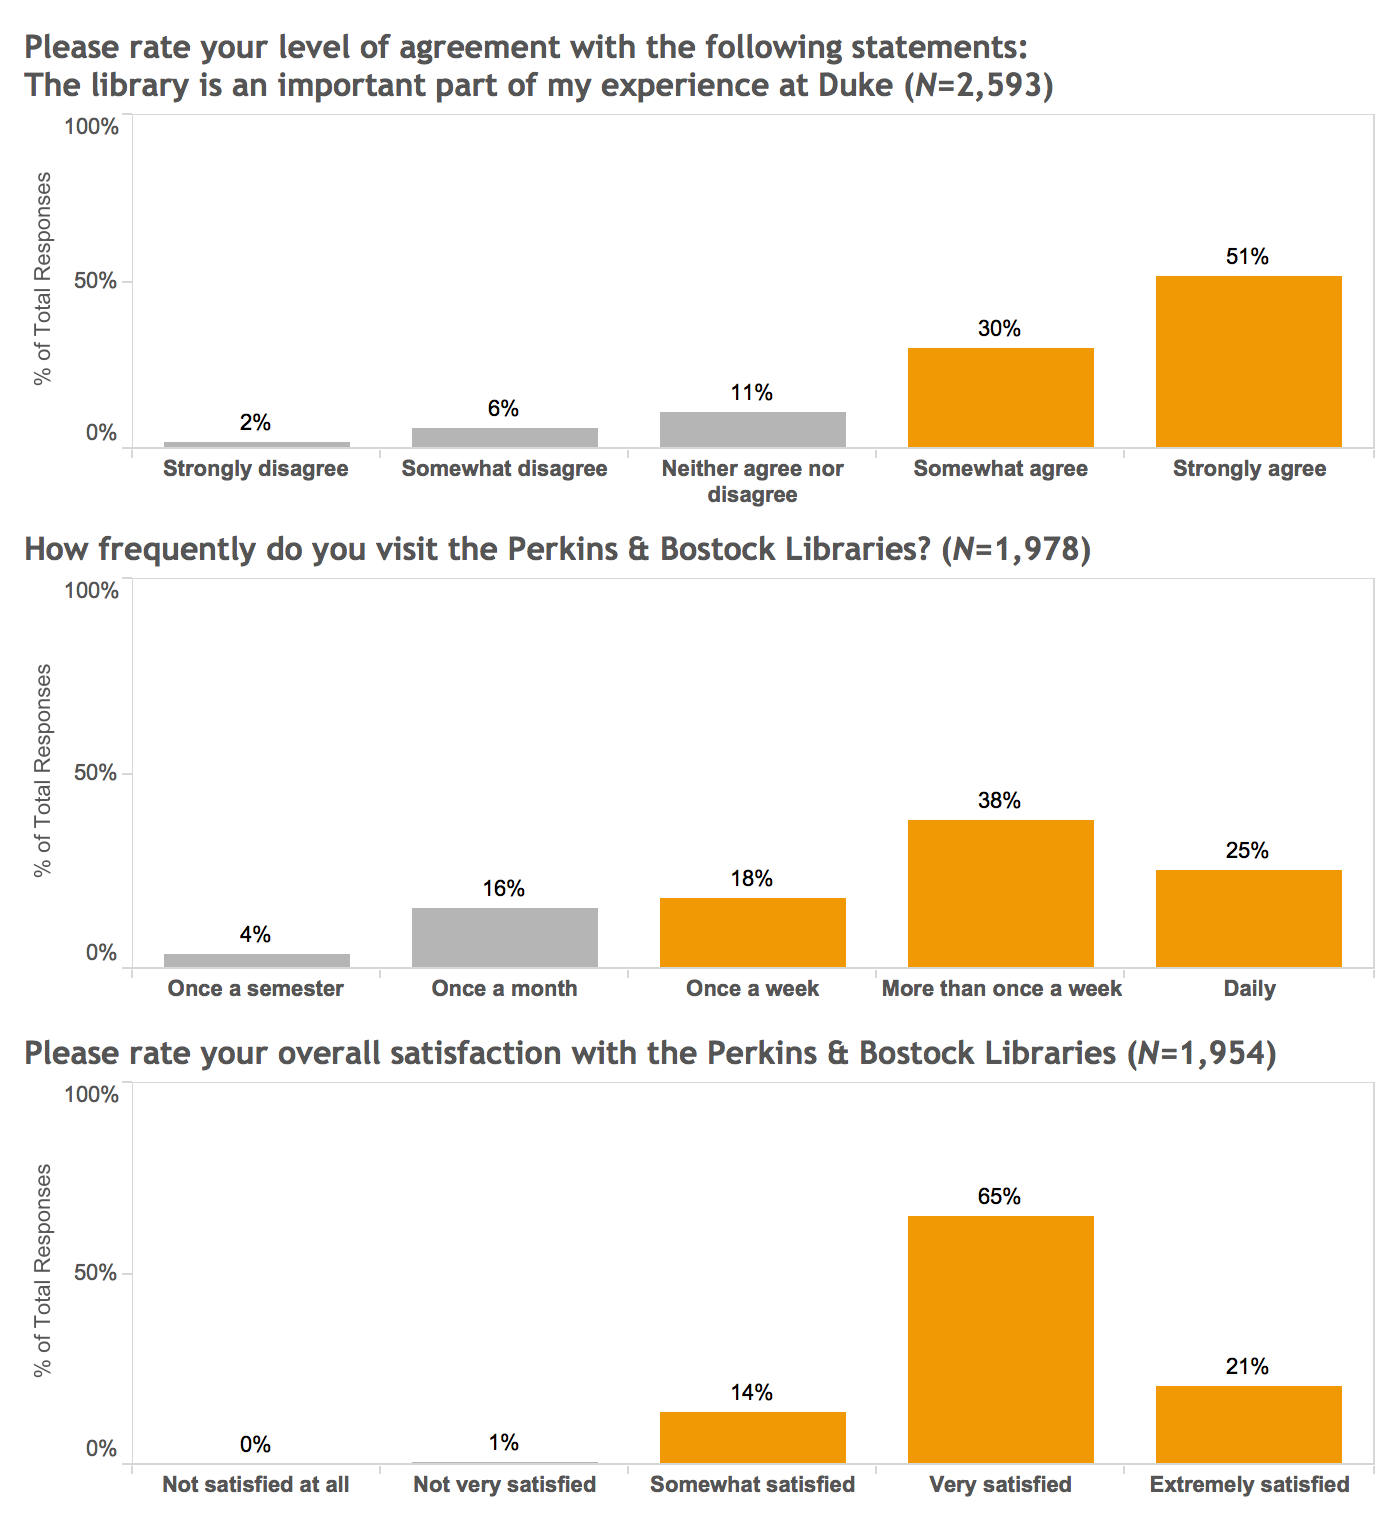 "Three related bar charts. The first bar chart shows responses to a question asking students to agree that the library is an important part of their experience. 30% of students selected ""somewhat agree,"" and 51% selected ""strongly agree."" A second chart shows that, for the Perkins & Bostock Libraries, 18% of students visit once a week, 38% visit more than once a week, and 25% visit daily. The third chart shows that for overall satisfaction with Perkins & Bostock, 14% are somewhat satisfied, 65% are very satisfied, and 21% are extremely satisfied."